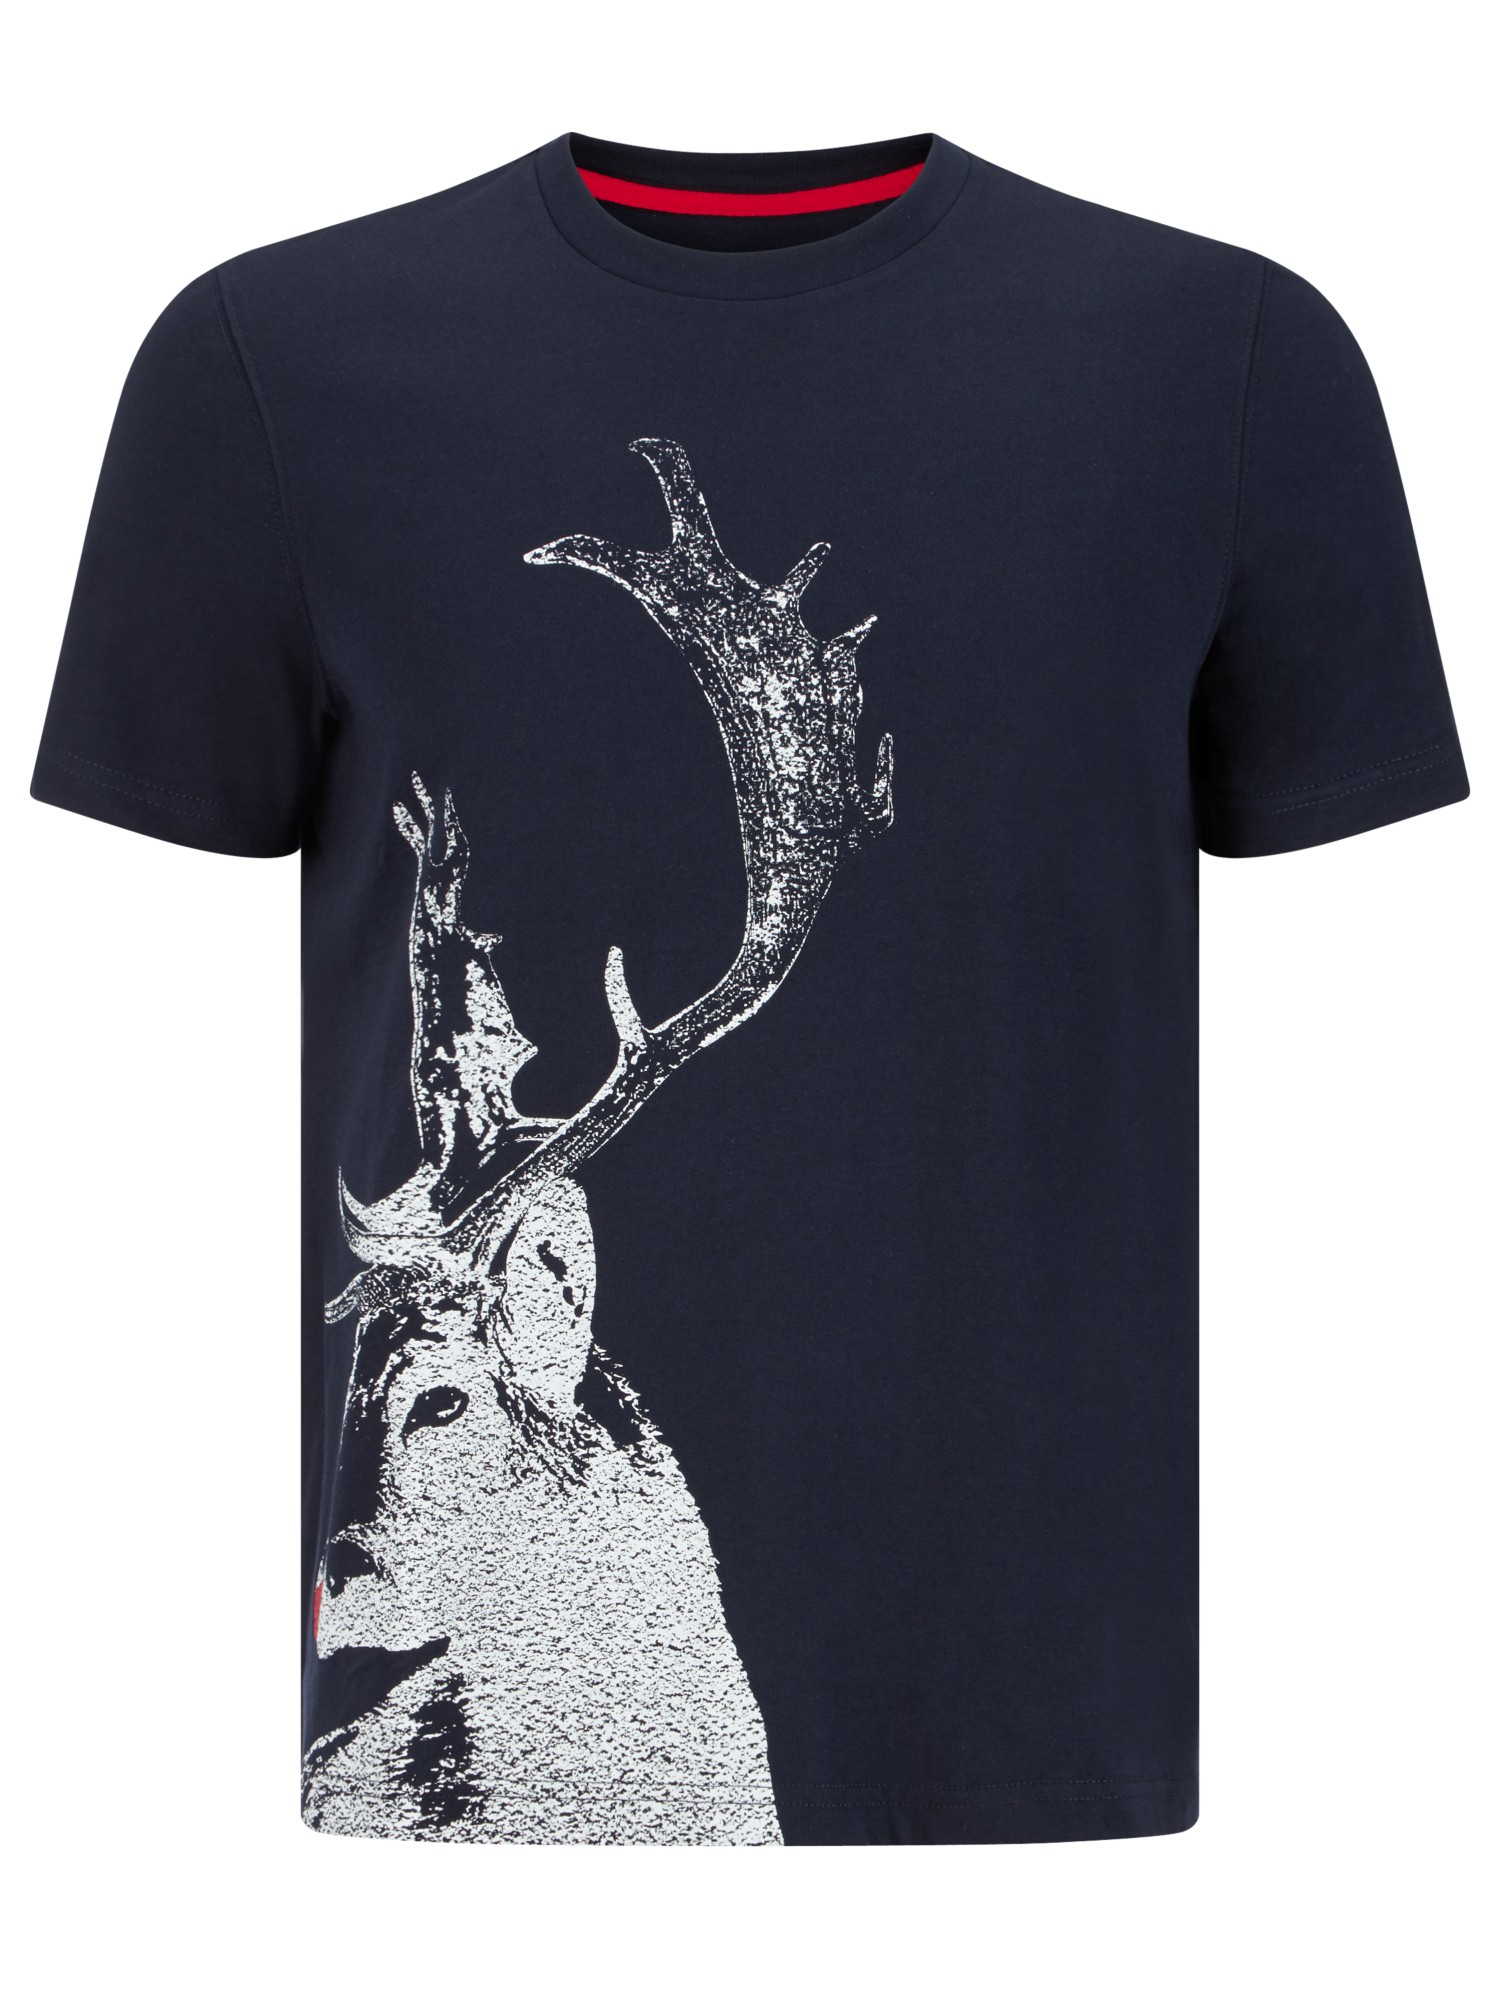 john lewis vintage stag organic cotton t shirt in navy blue for men lyst. Black Bedroom Furniture Sets. Home Design Ideas